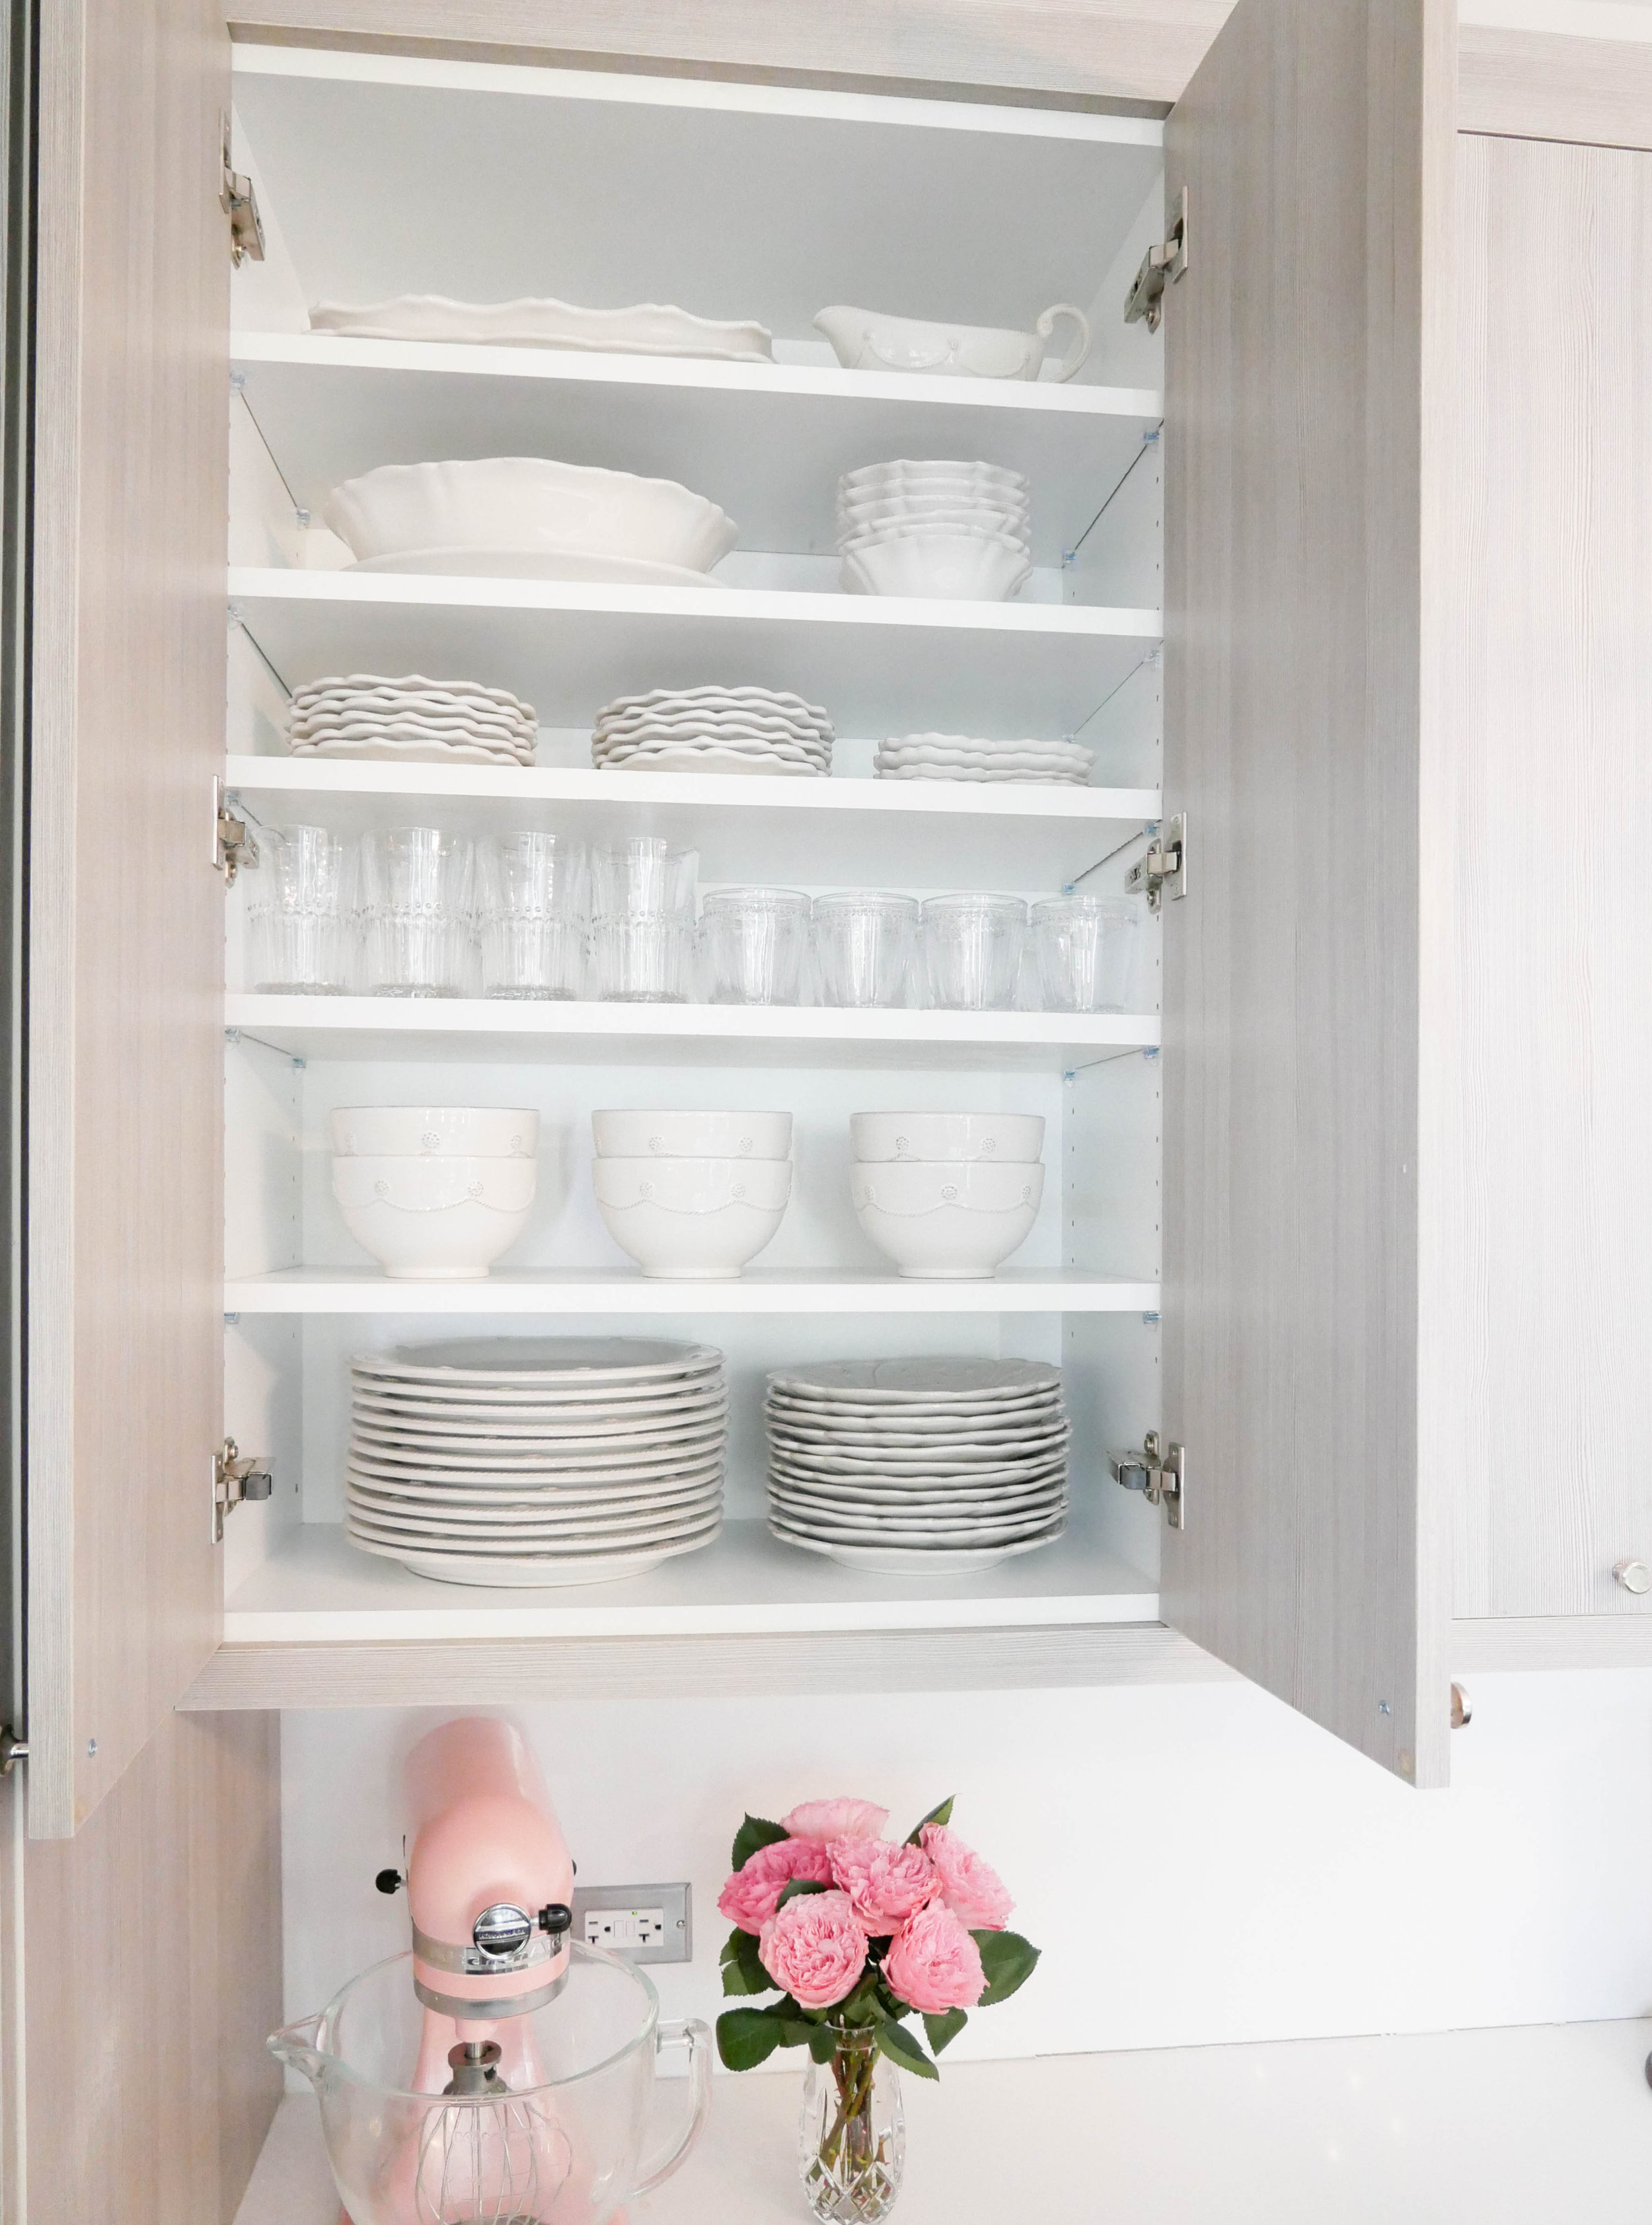 In order to maximize the vertical space in the cabinets, we added additional shelves to display Caitlin's beautiful dishware. Your local Home Depot sells these shelves and brackets, and will cut the shelves to your measurements.